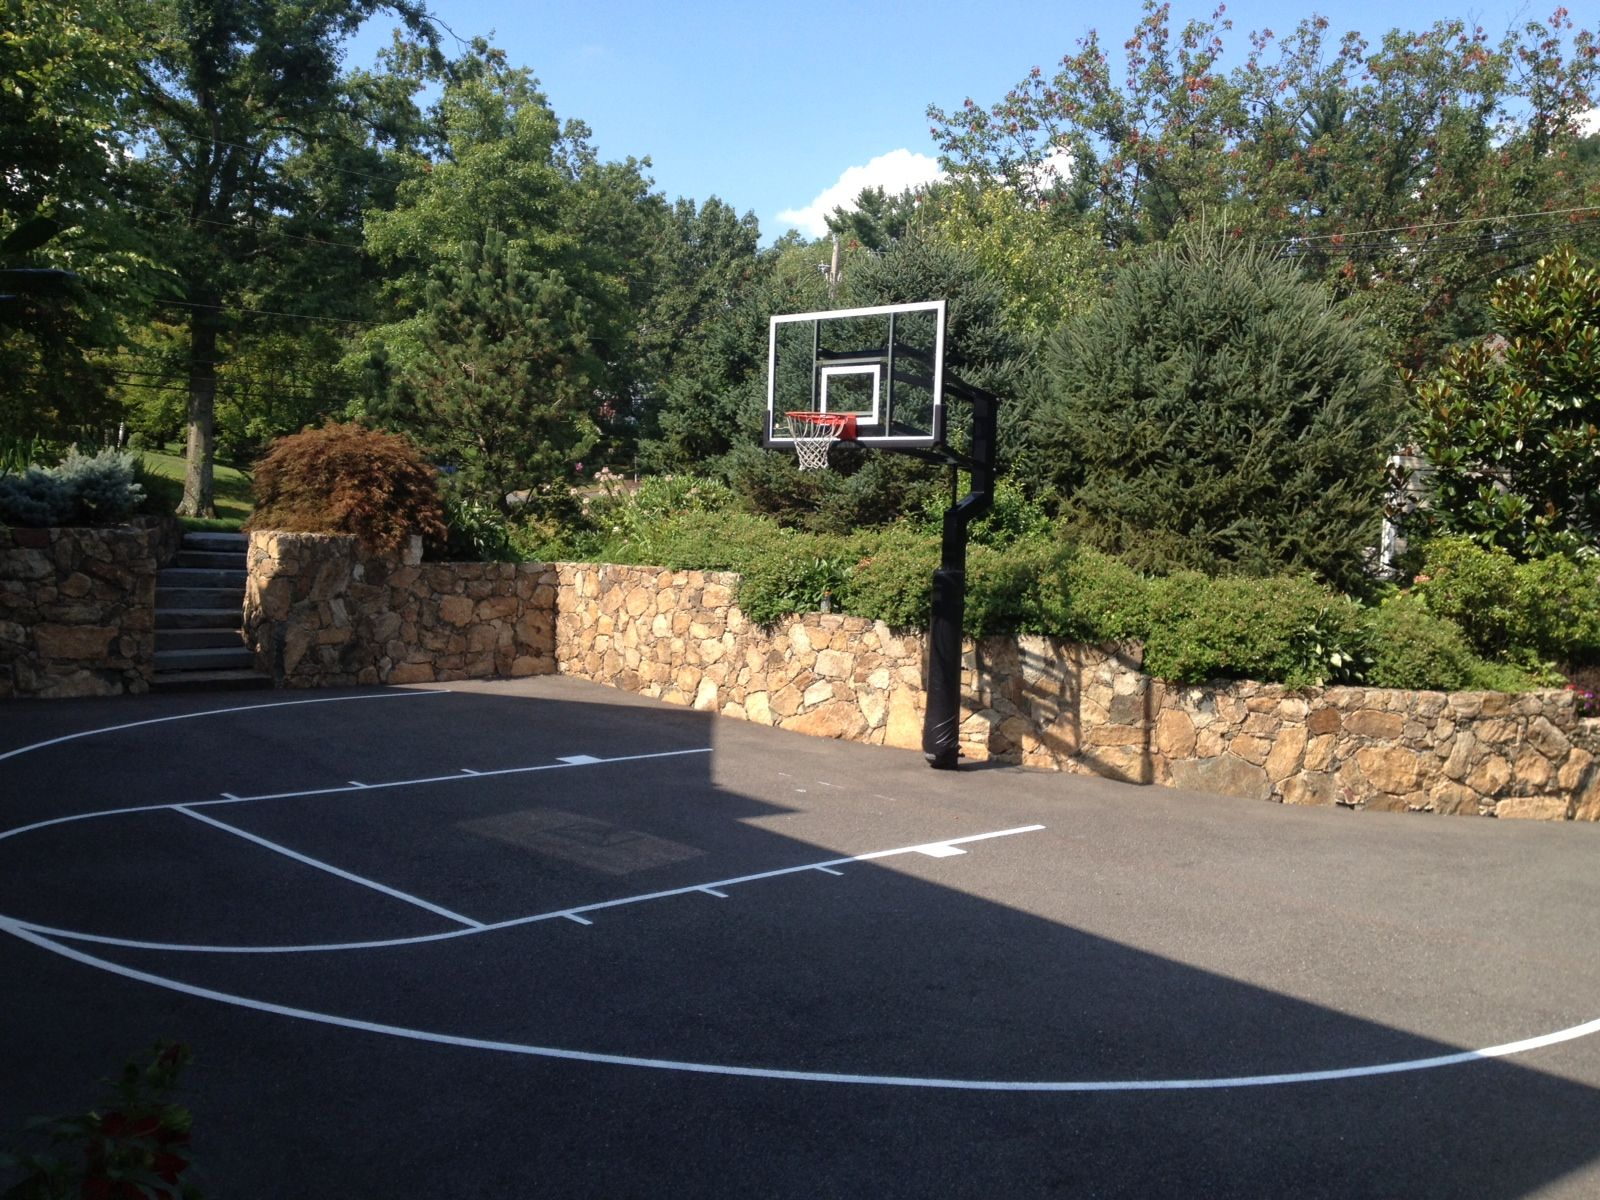 Having A Basketball Hoop In Your Driveway Is Very Cool. It Encourages Kids  To Play · Backyard Basketball CourtBasketball ...